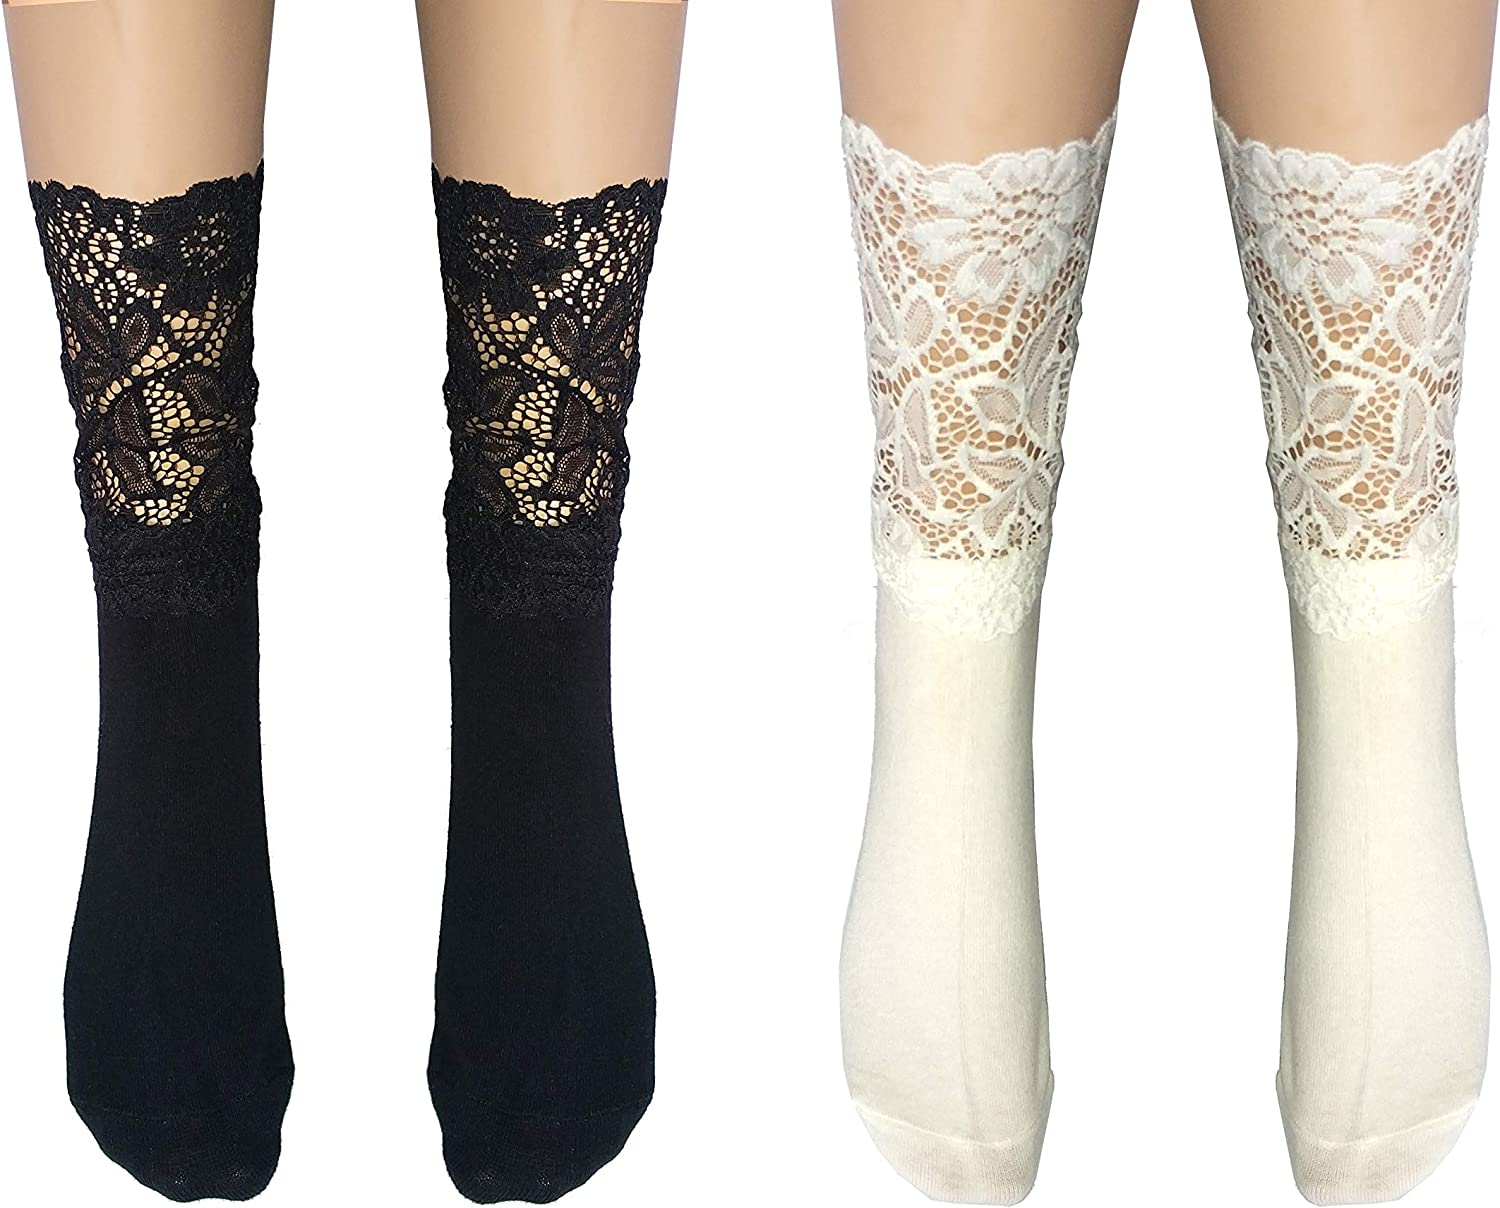 Flycheers women's Lace Anklet Sock, Breathable Mesh Lace Socks, Fishnet Dress Ankle Socks, 2 Pairs